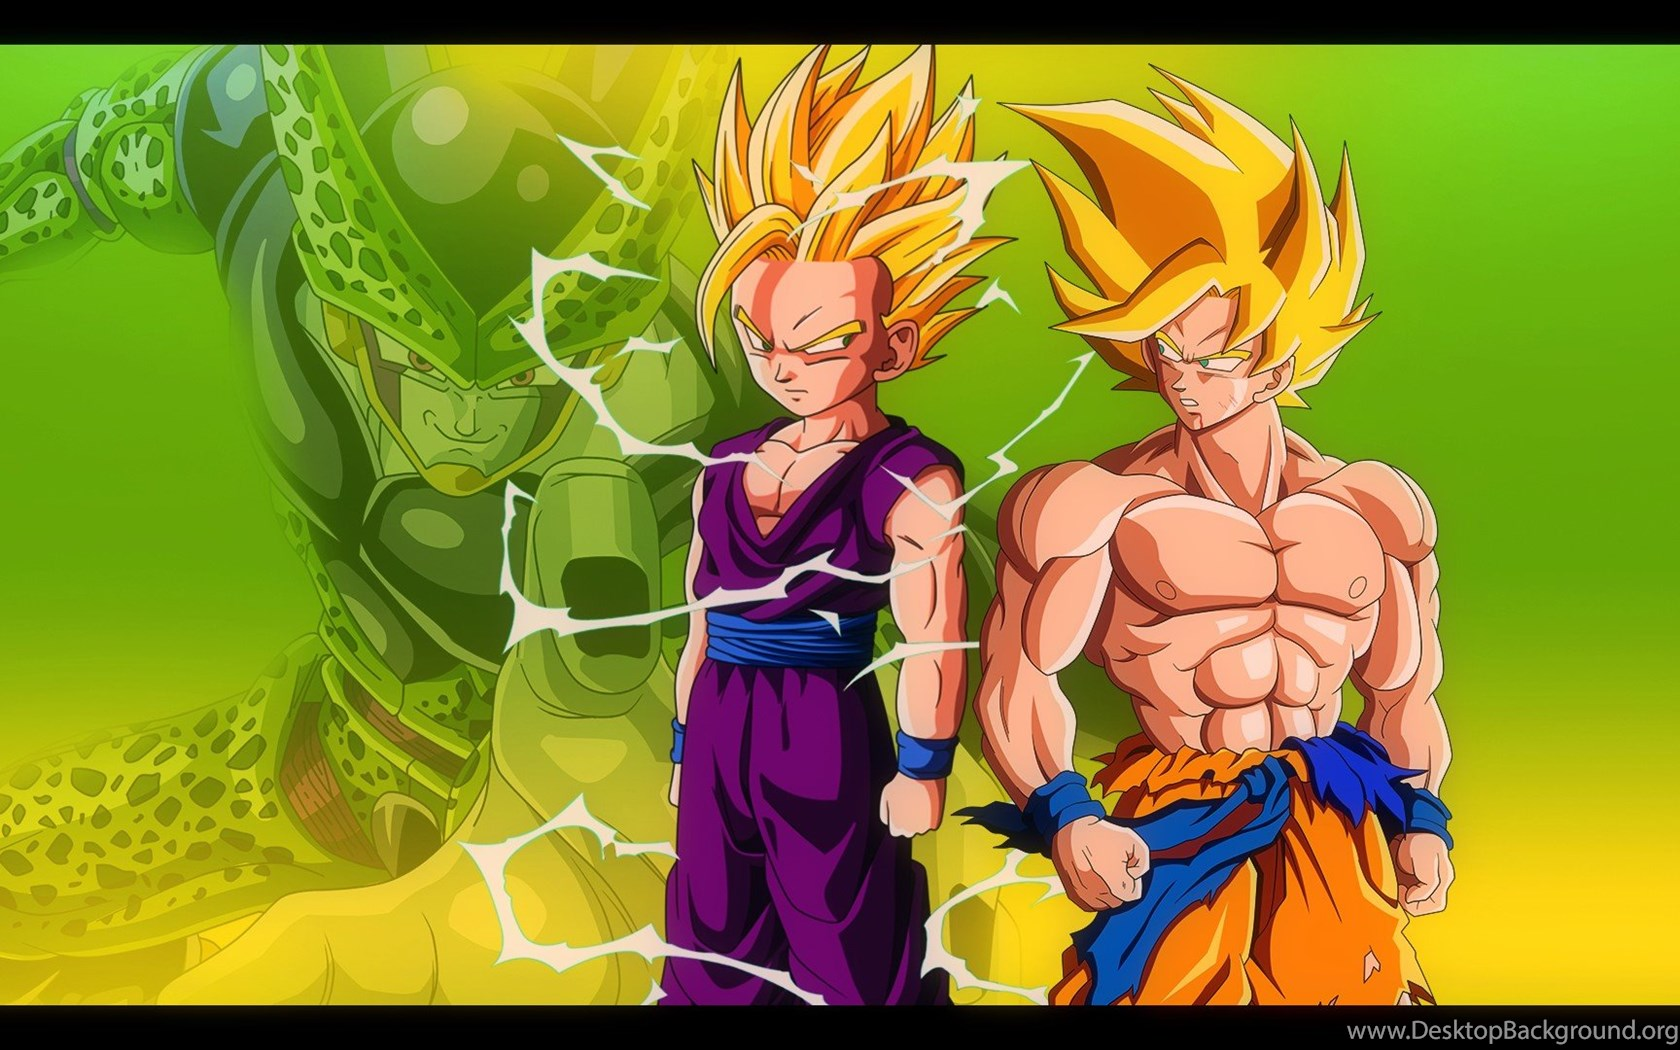 Dragon Ball Z Gohan Vs Cell Wallpapers 1388116 Desktop Background